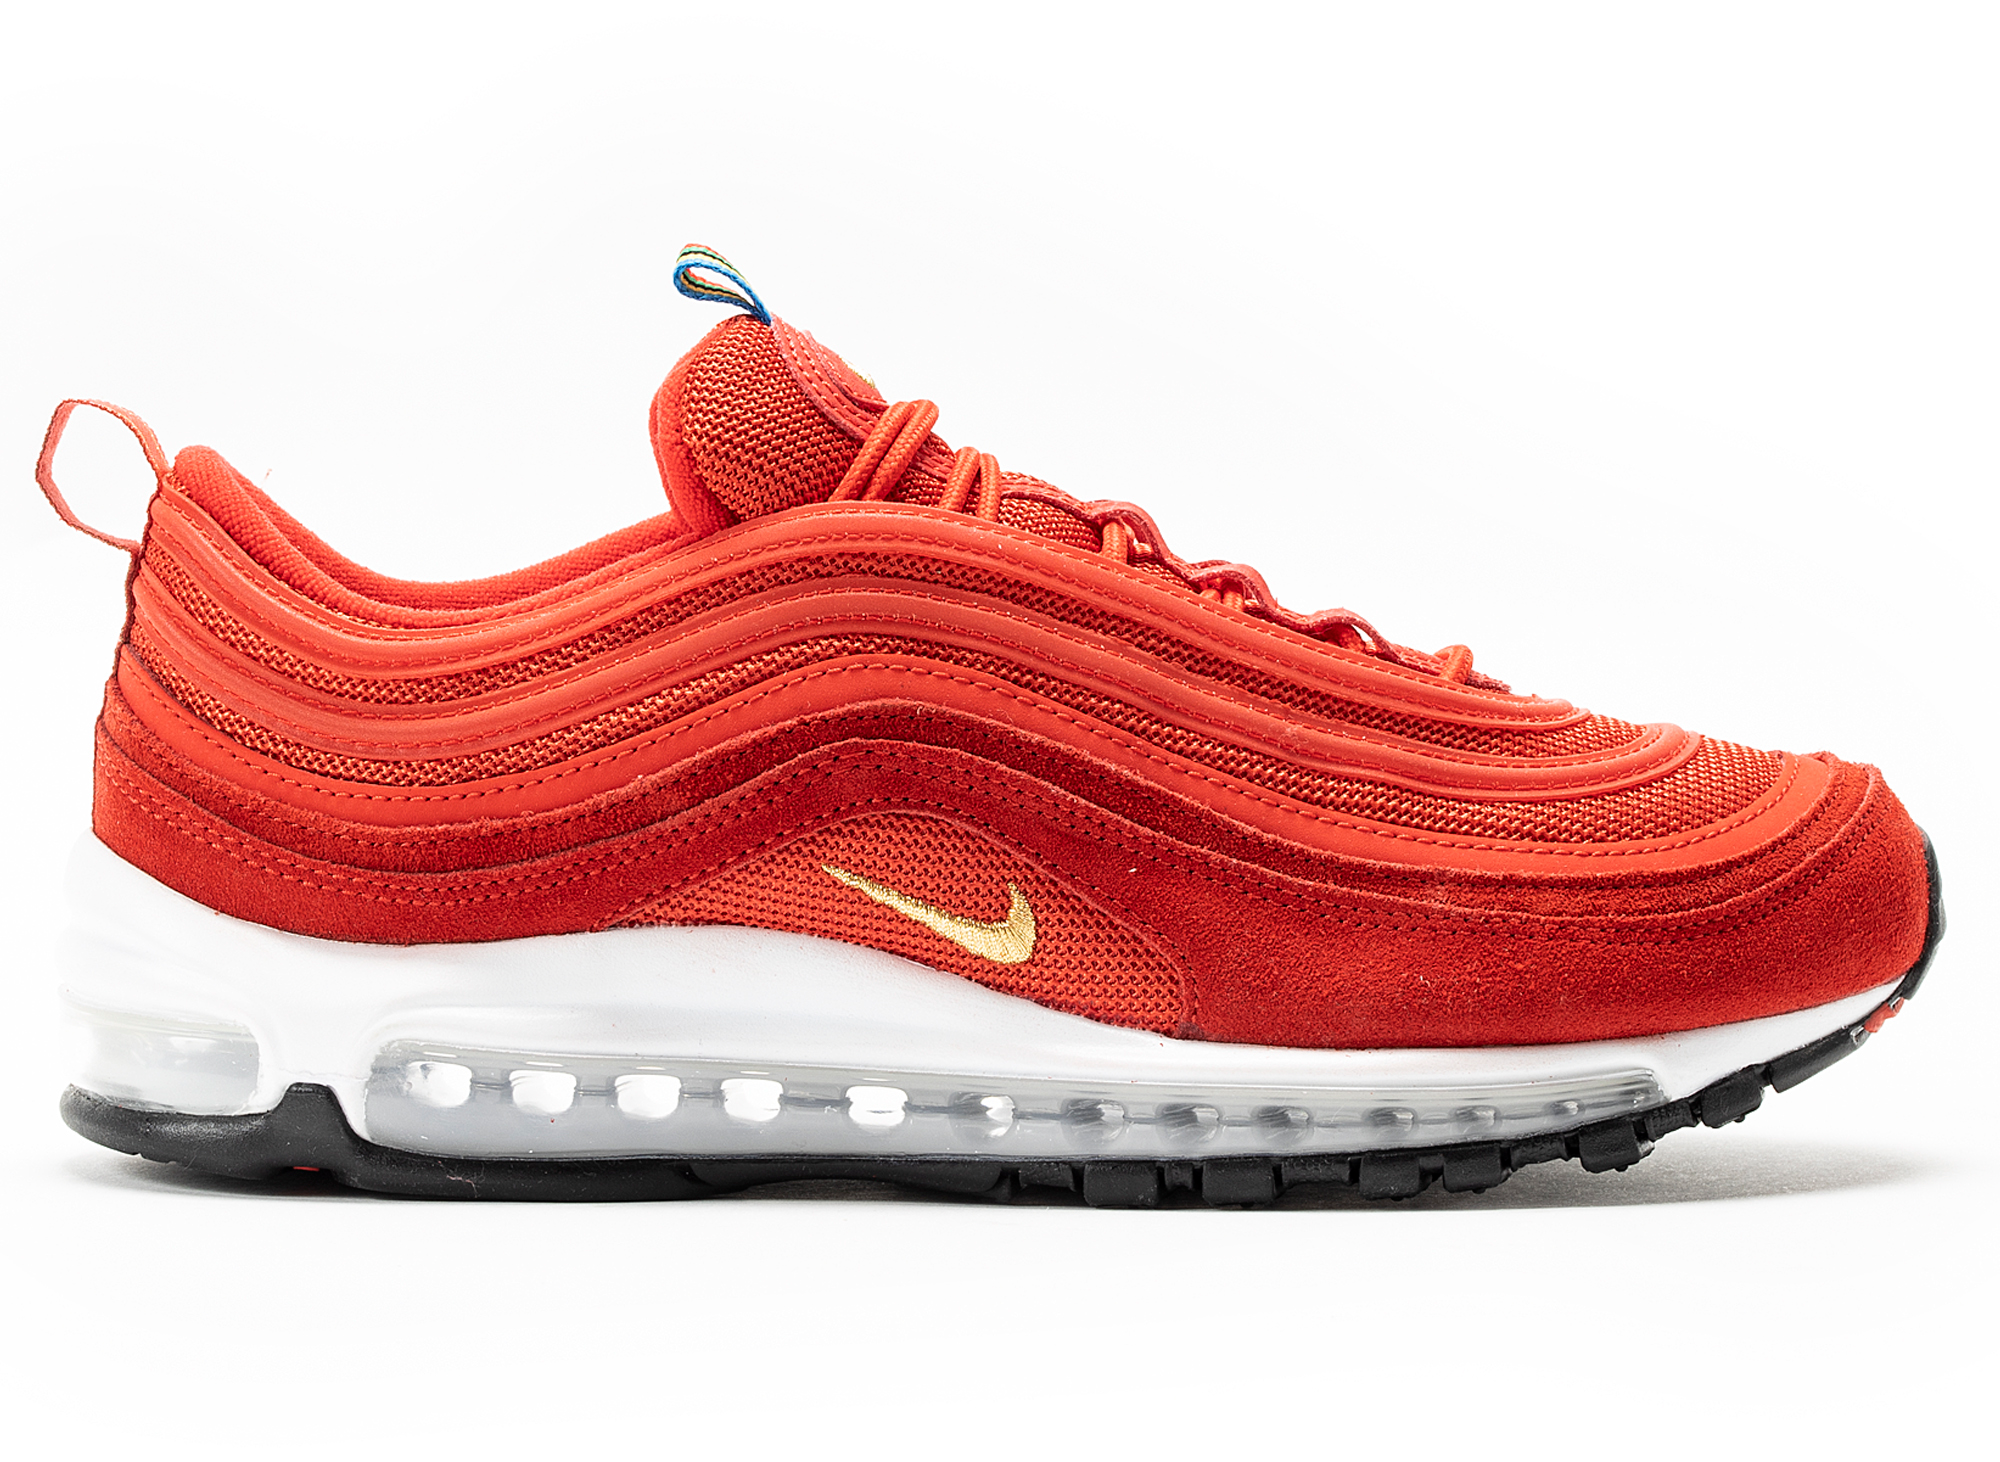 Nike Air Max 97 'Challenge Red' XLD